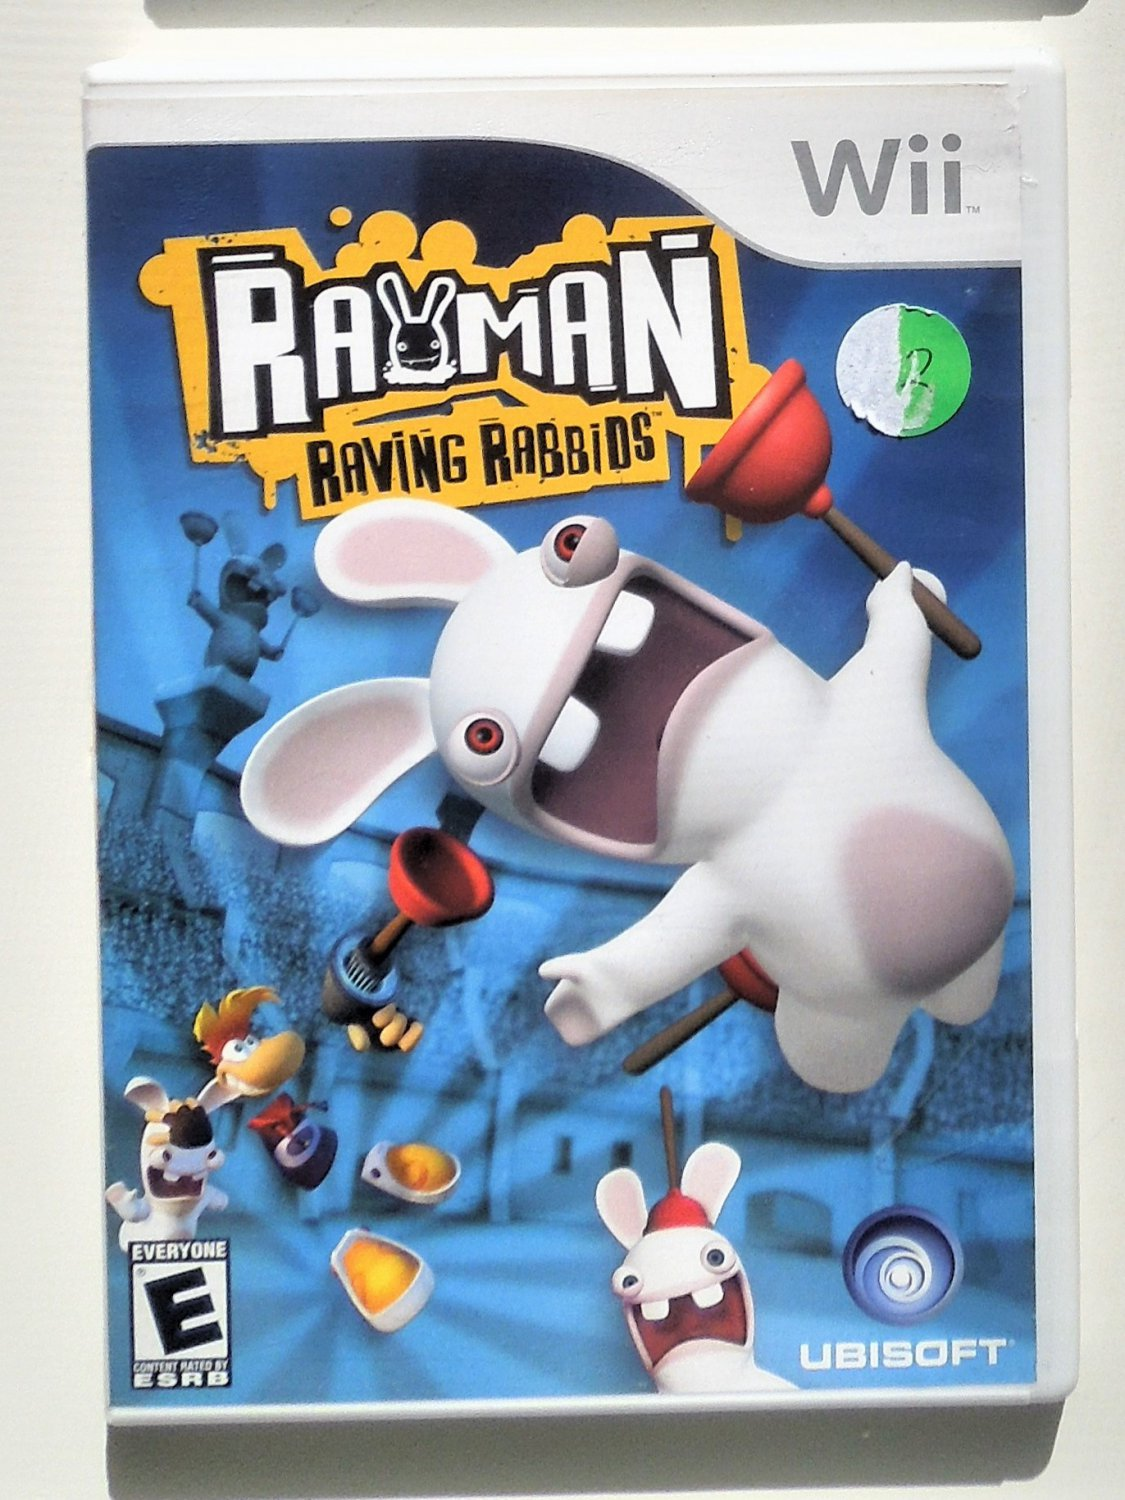 2006 Ubisoft Rayman Raving Rabbids For Nintendo Wii Game Systems